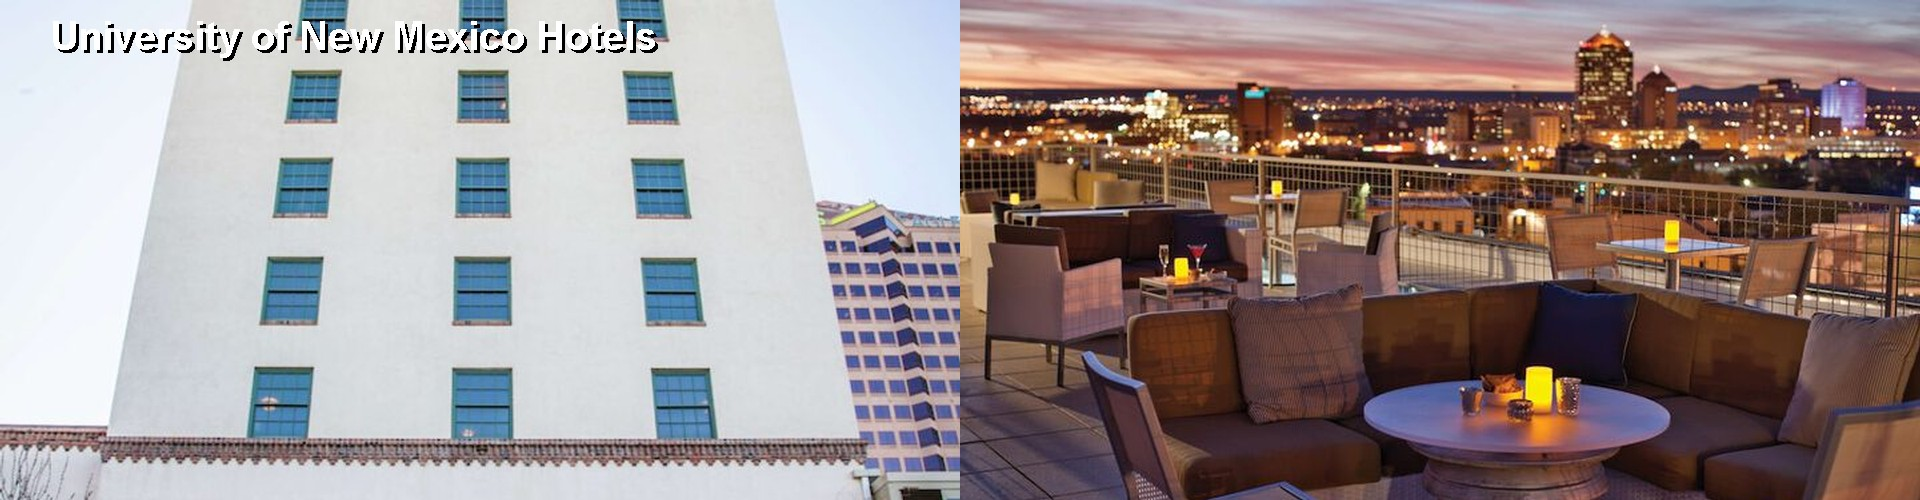 5 Best Hotels near University of New Mexico